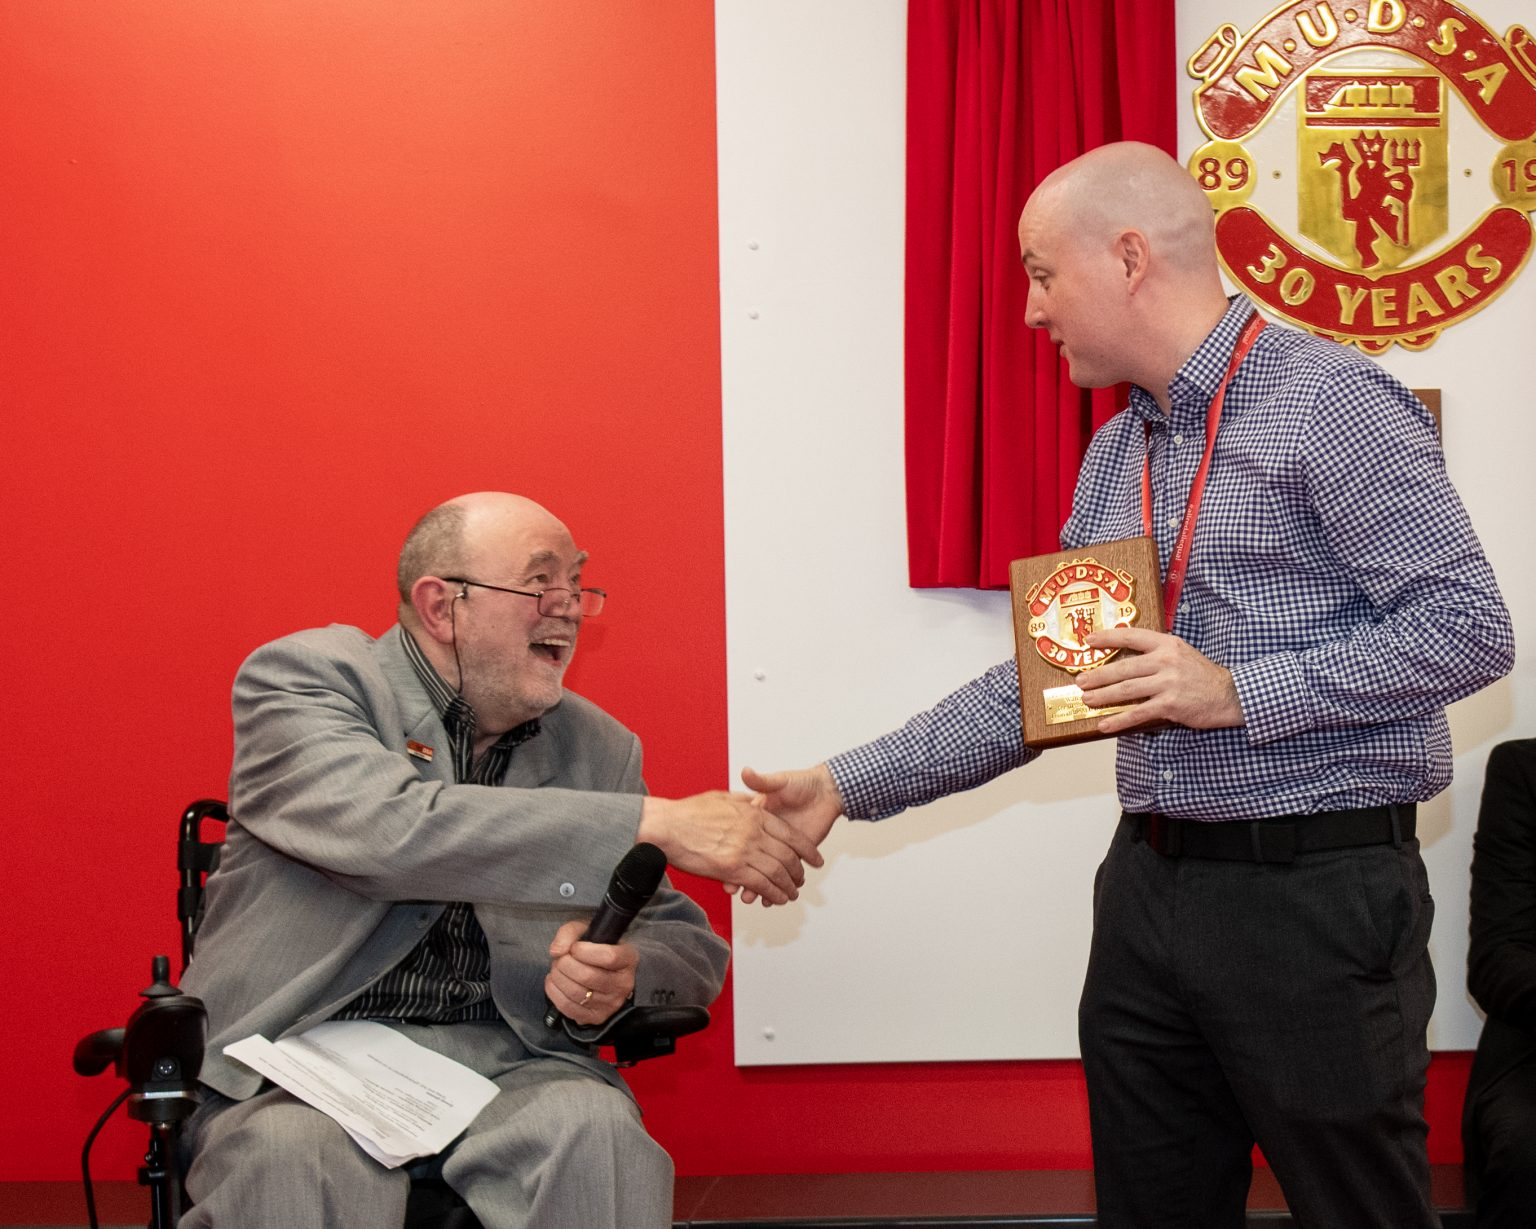 Manchester United provide a more accessible fan experience at Old Trafford